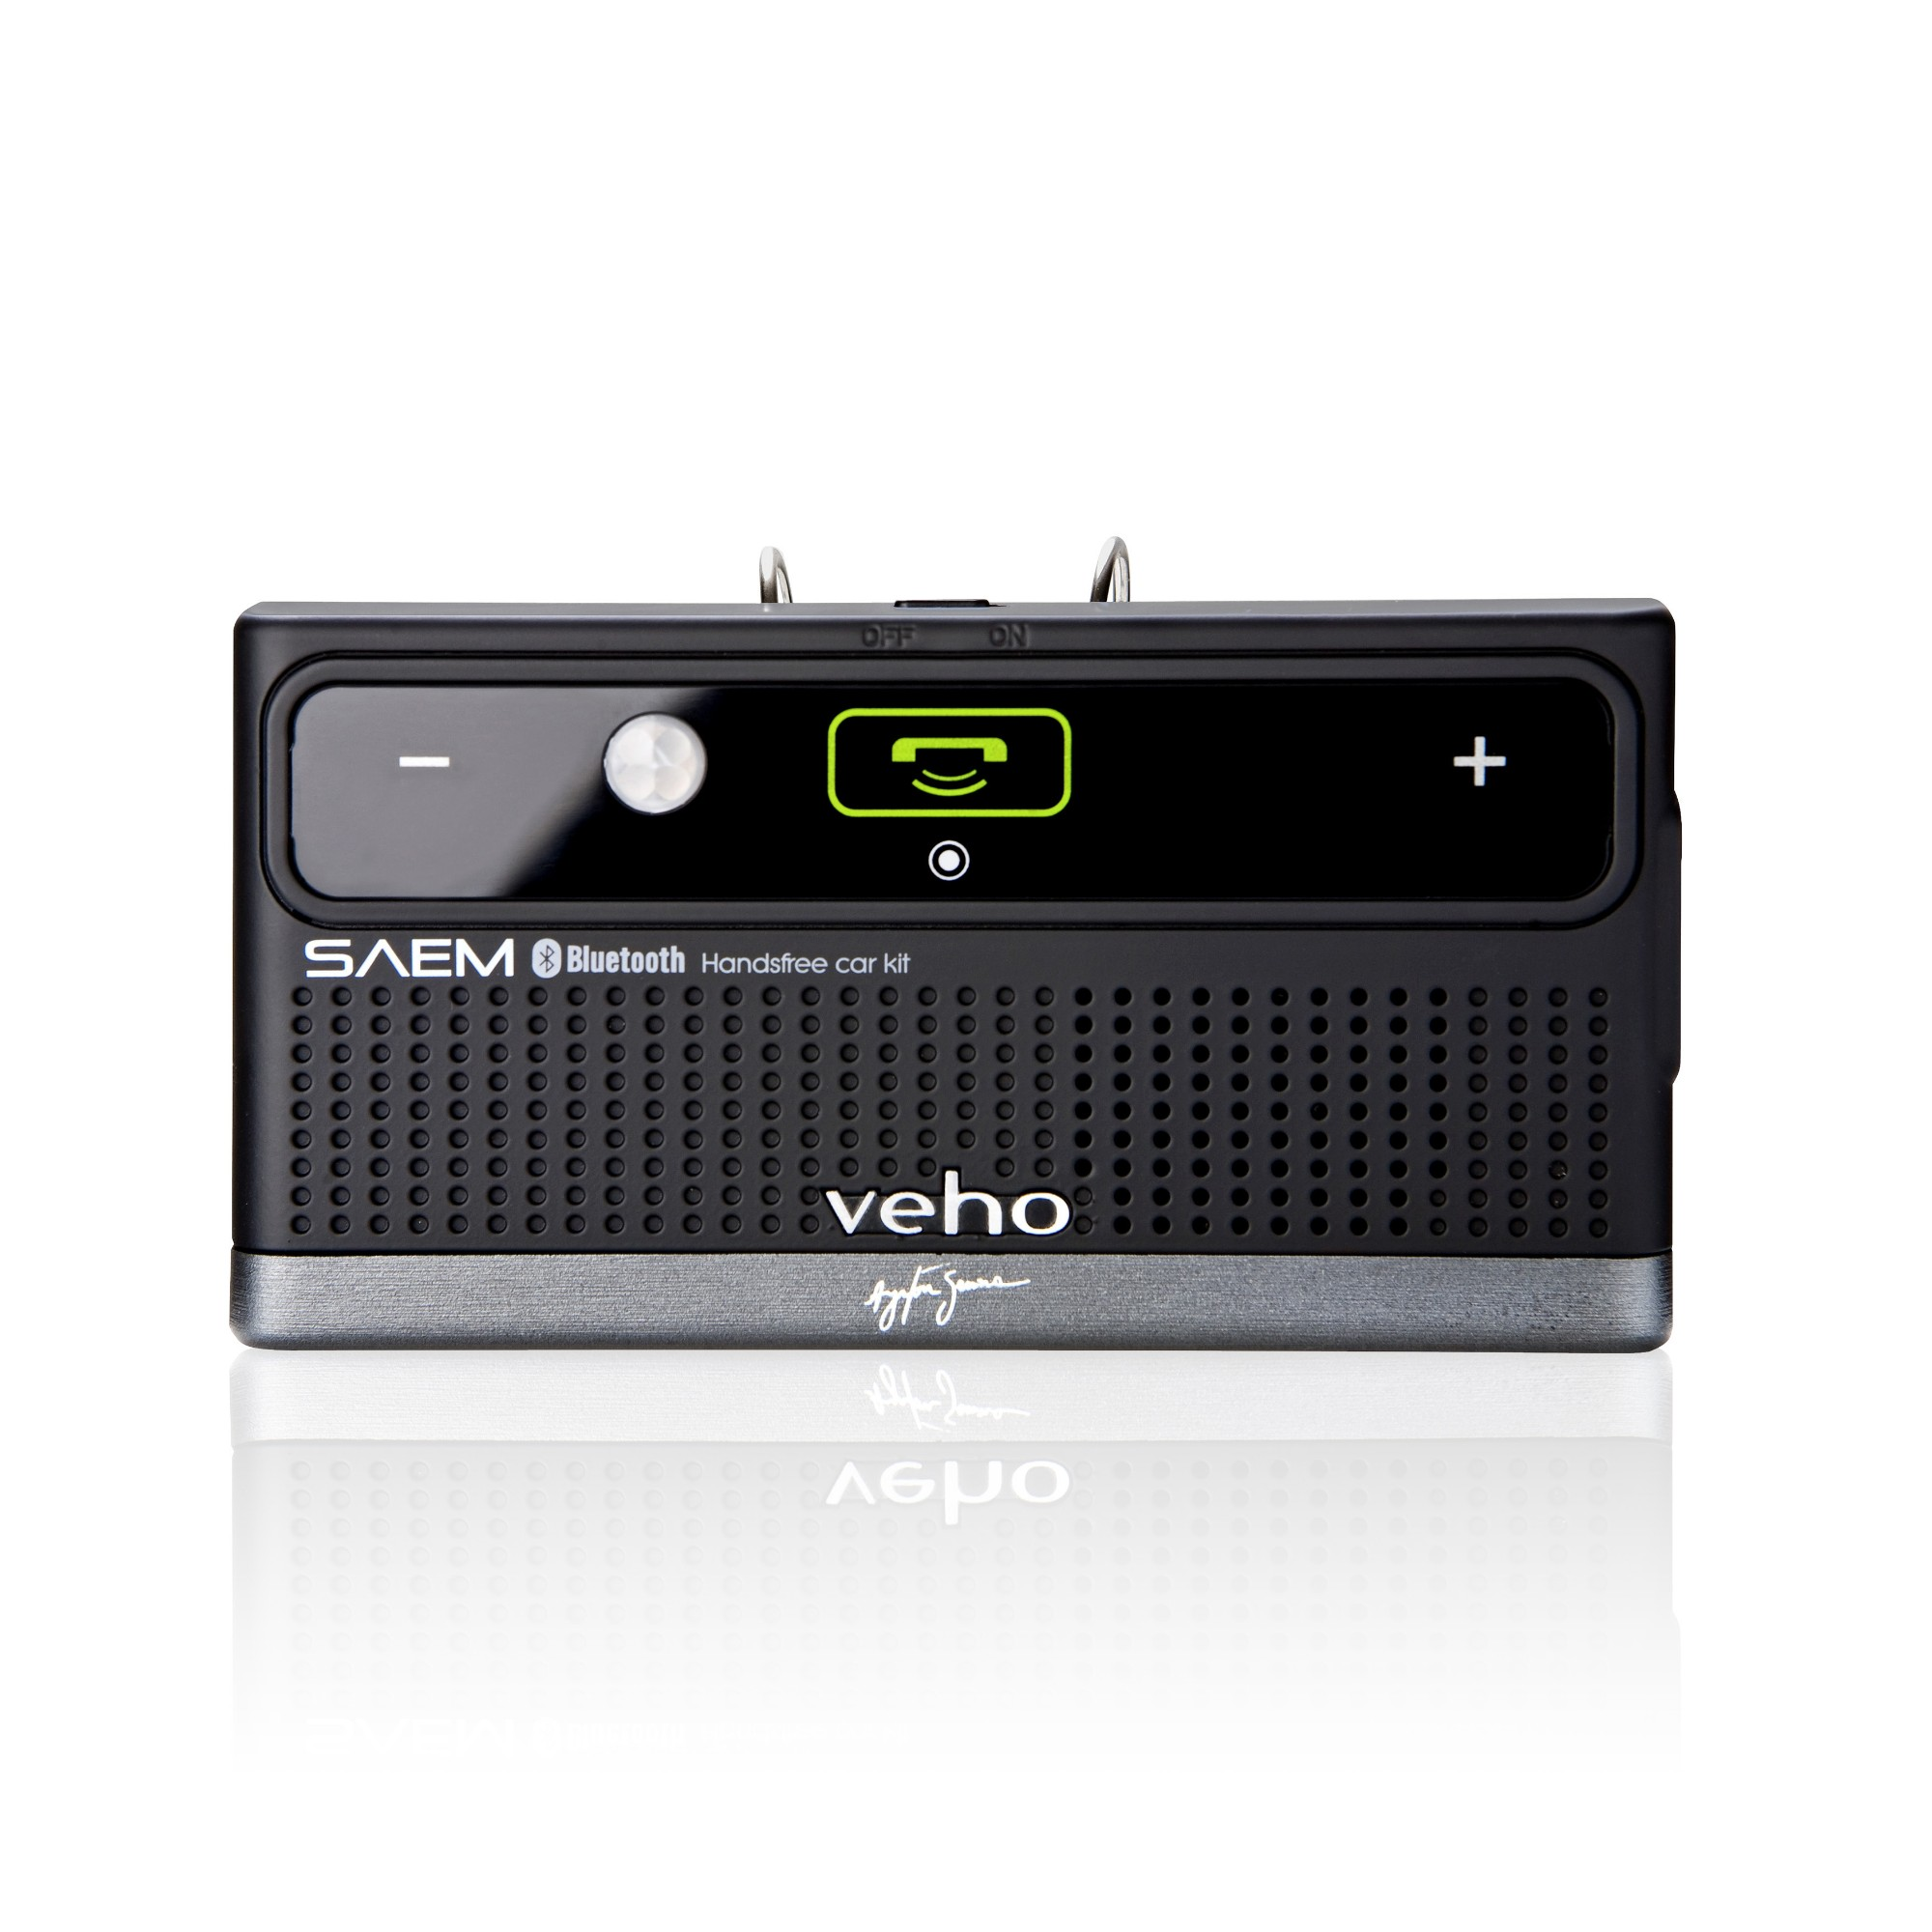 Veho SAEM S3 Black speakerphone